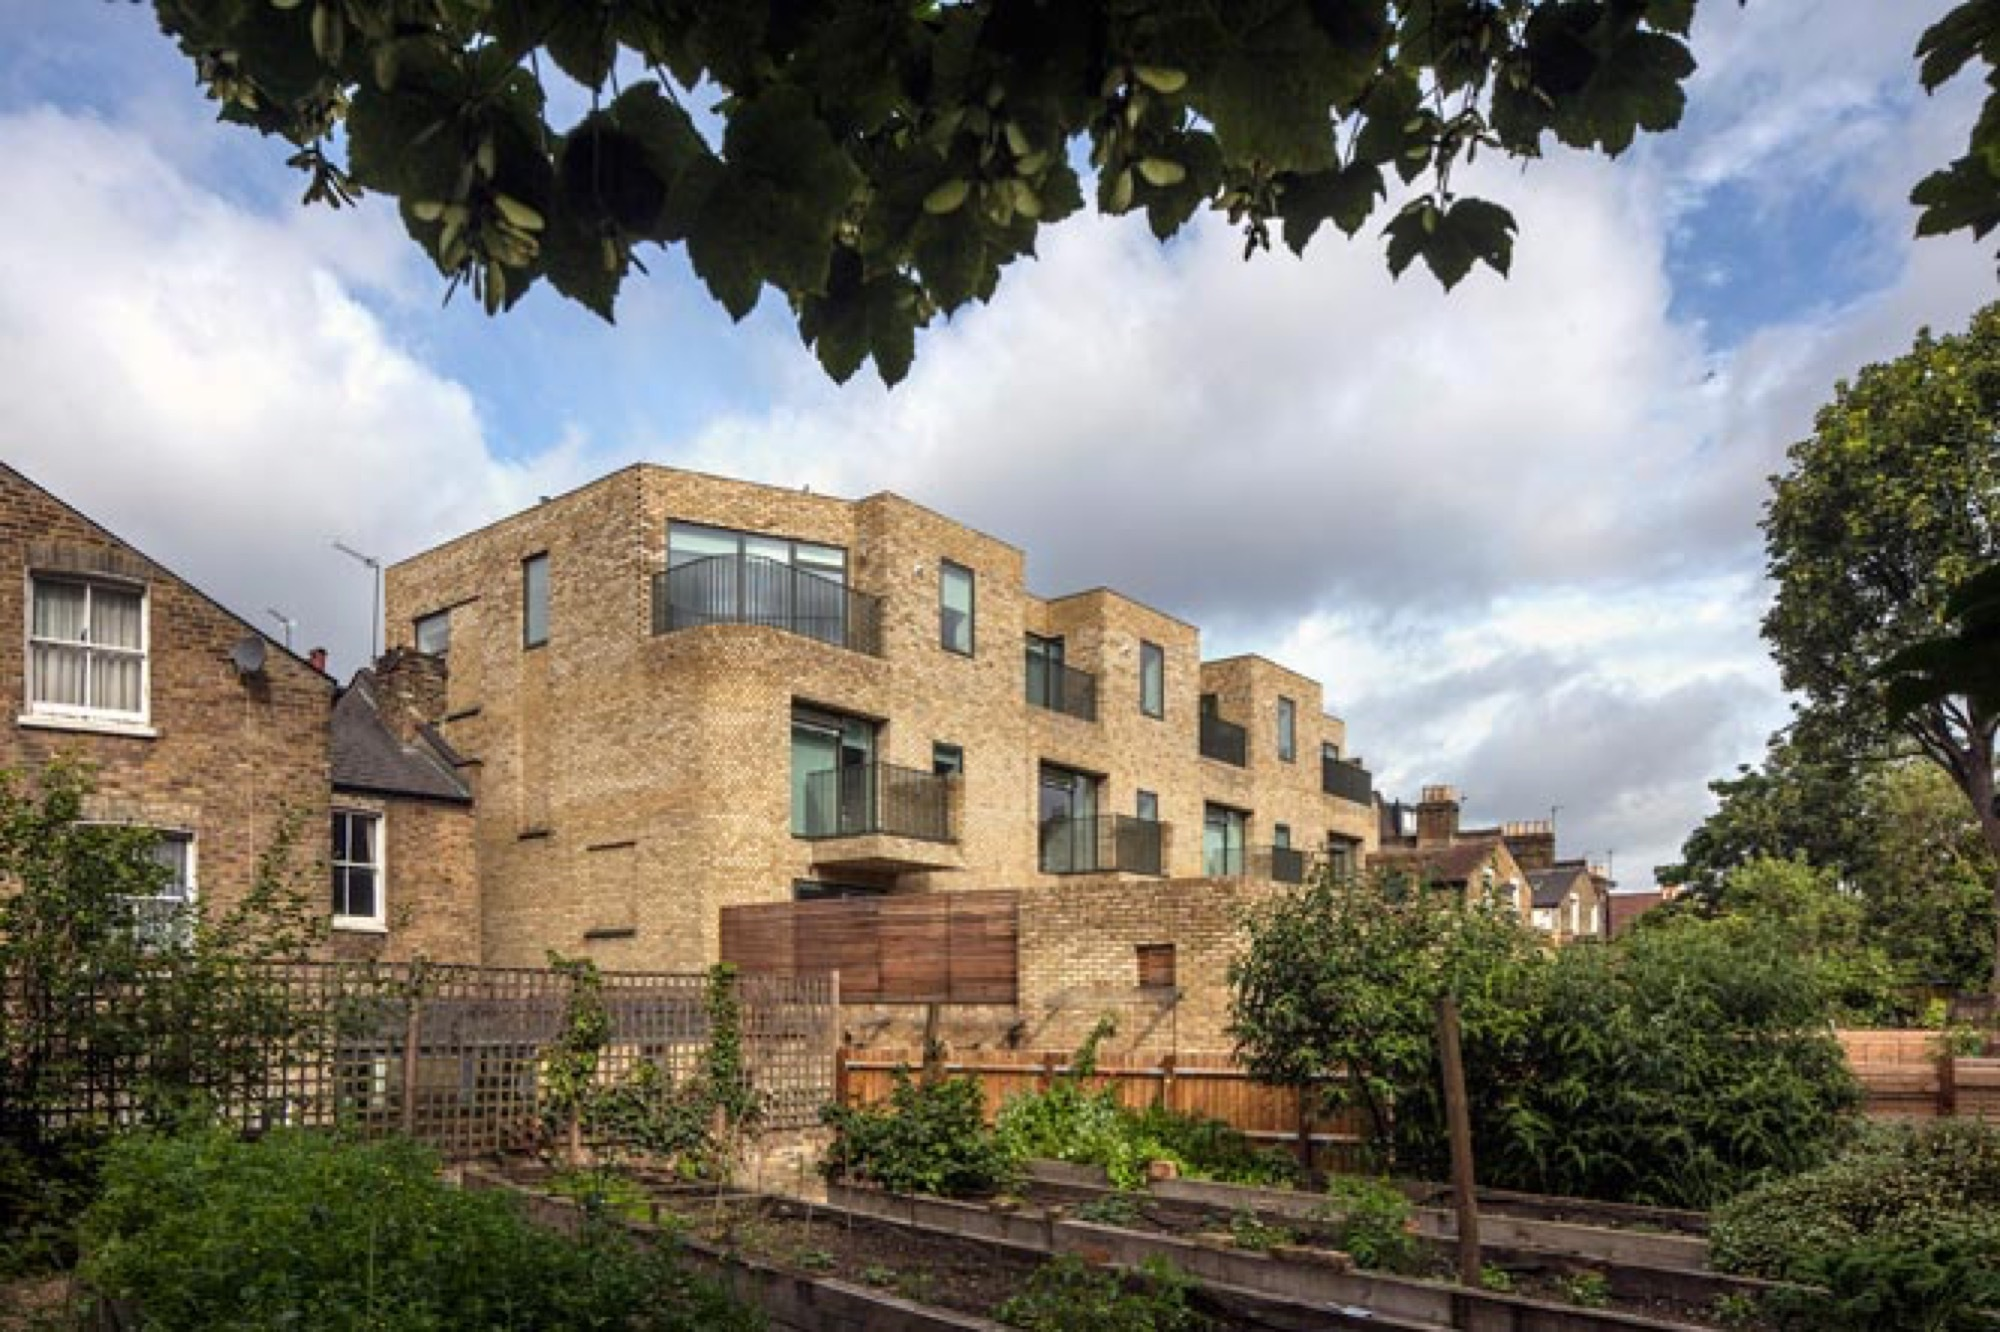 Cooperative Housing Scheme Peter Barber Architects